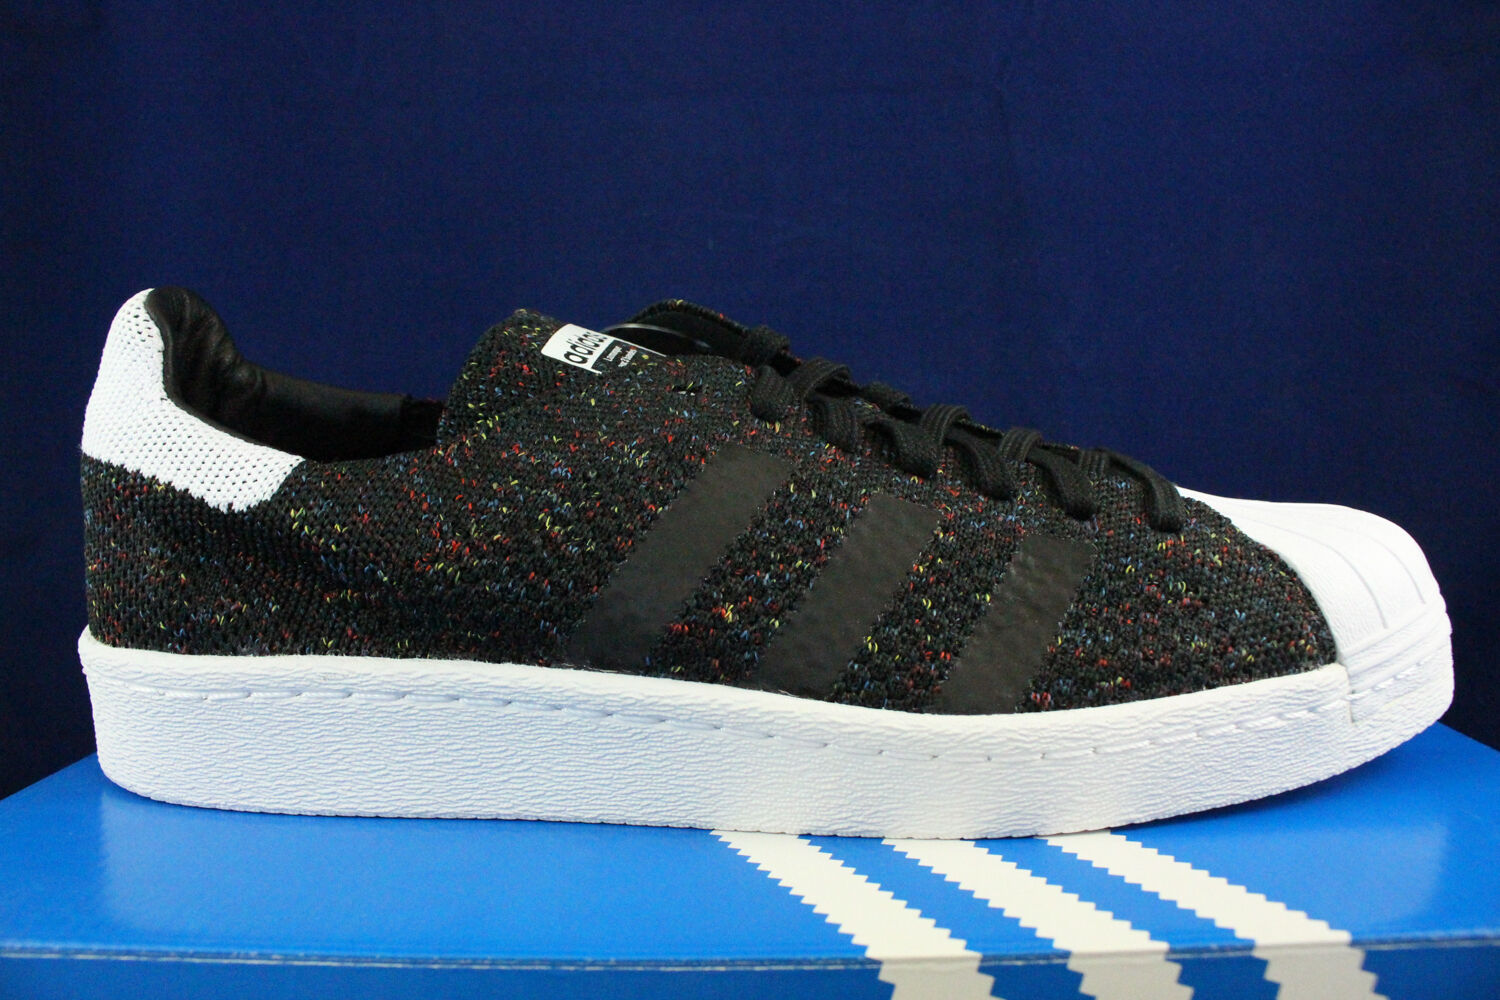 ADIDAS ORIGINALS SUPERSTAR 80'S PRIMEKNIT CORE BLACK MULTI COLOR S75844 SZ 11.5